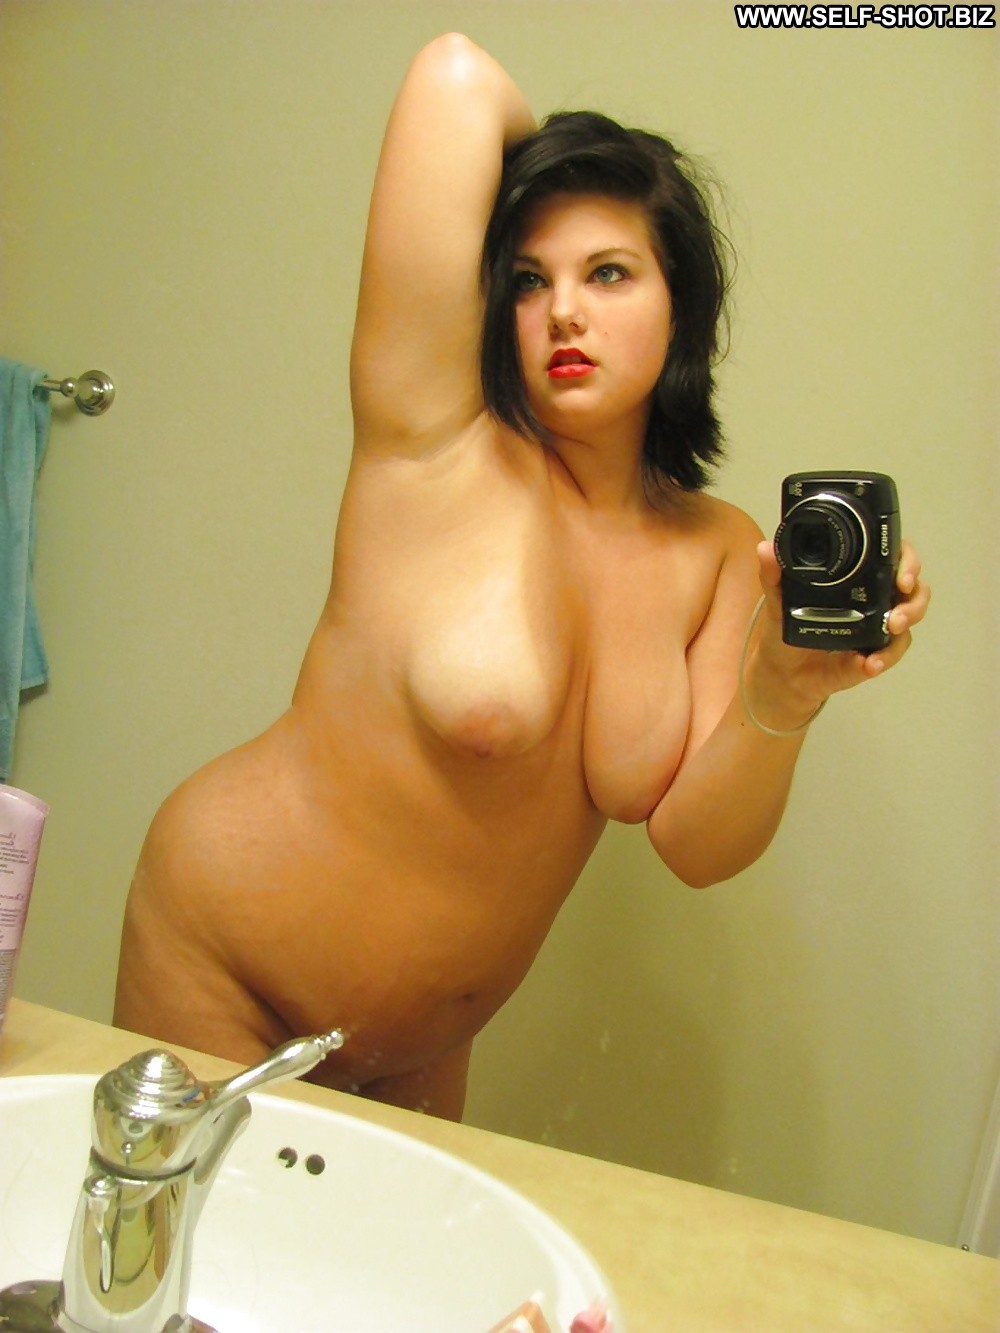 hot nude chubby self pic women